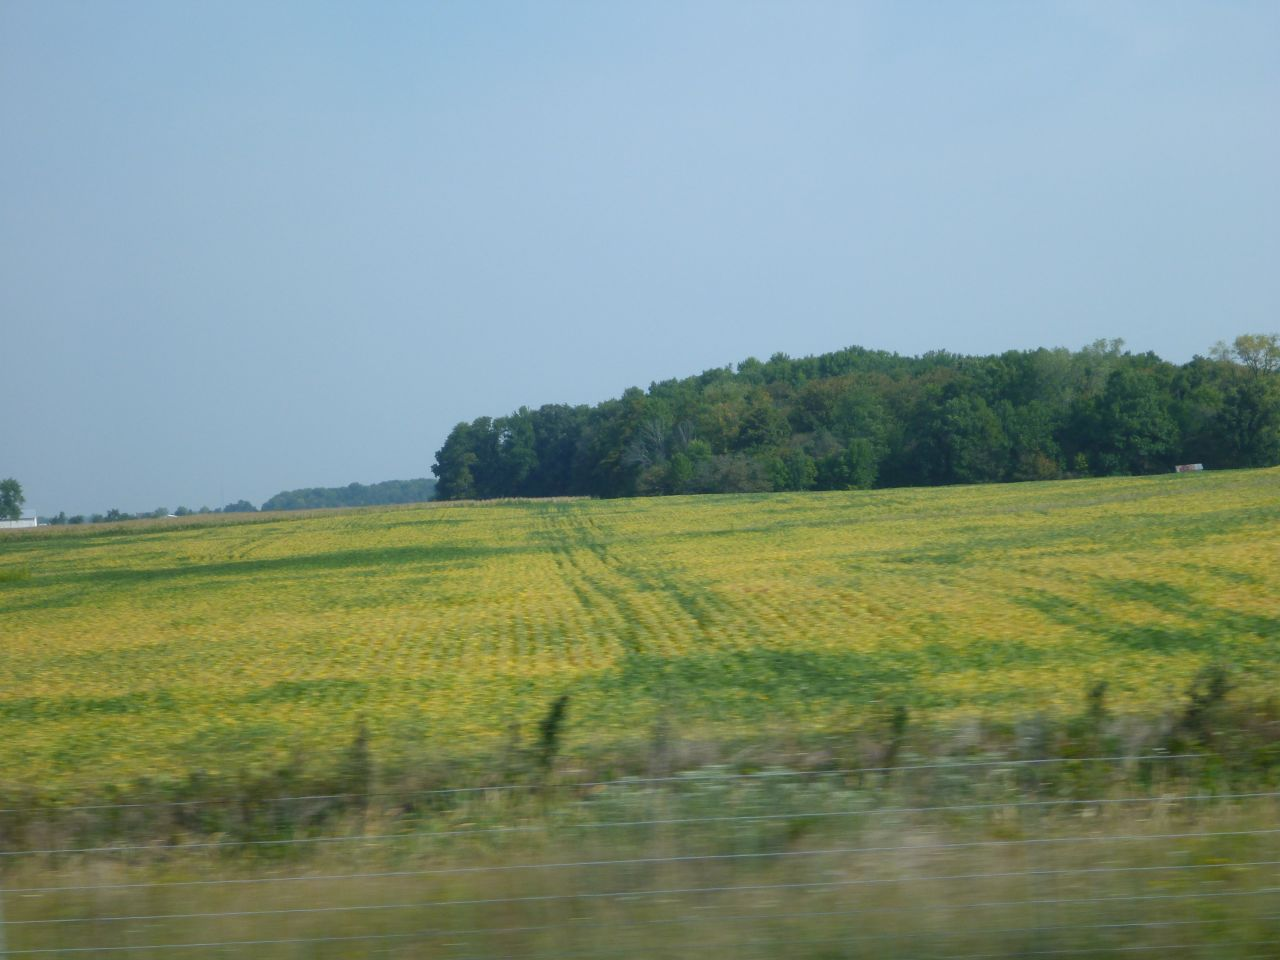 All The Yellow Is Dead Corn Stalks